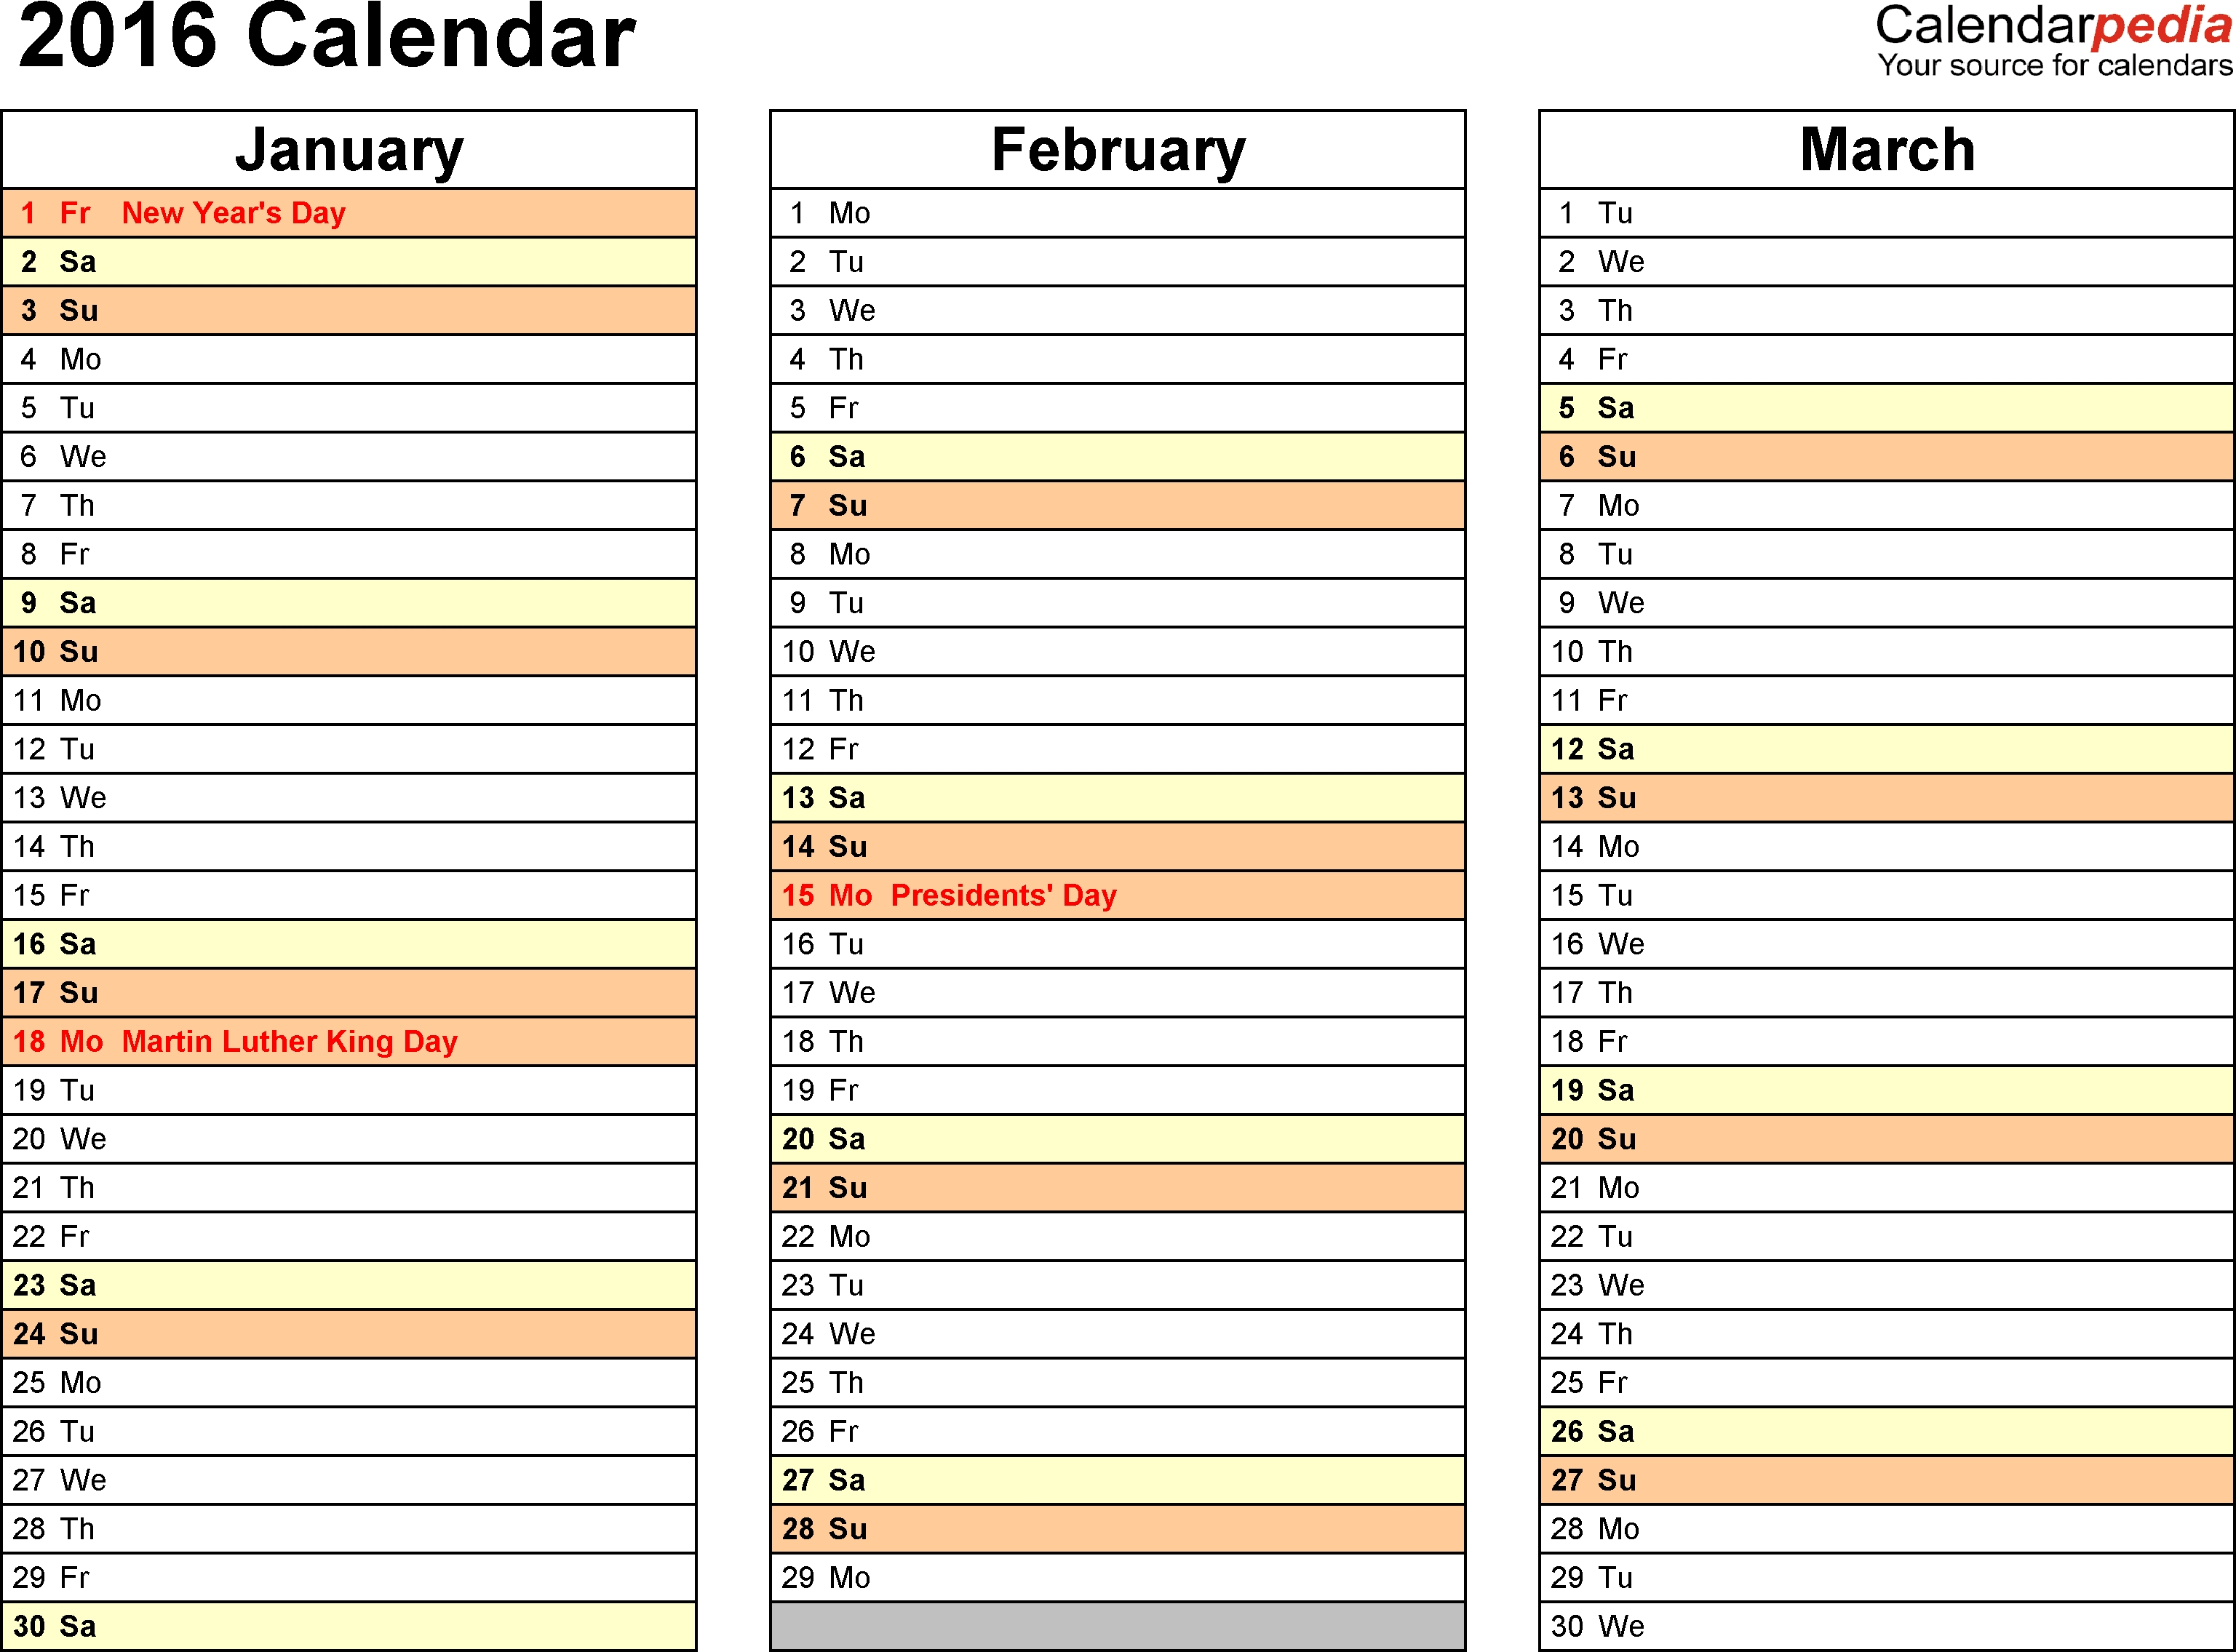 001 Monthly Calendar Templates Template Sensational 2016-Monthly Calendar List Template